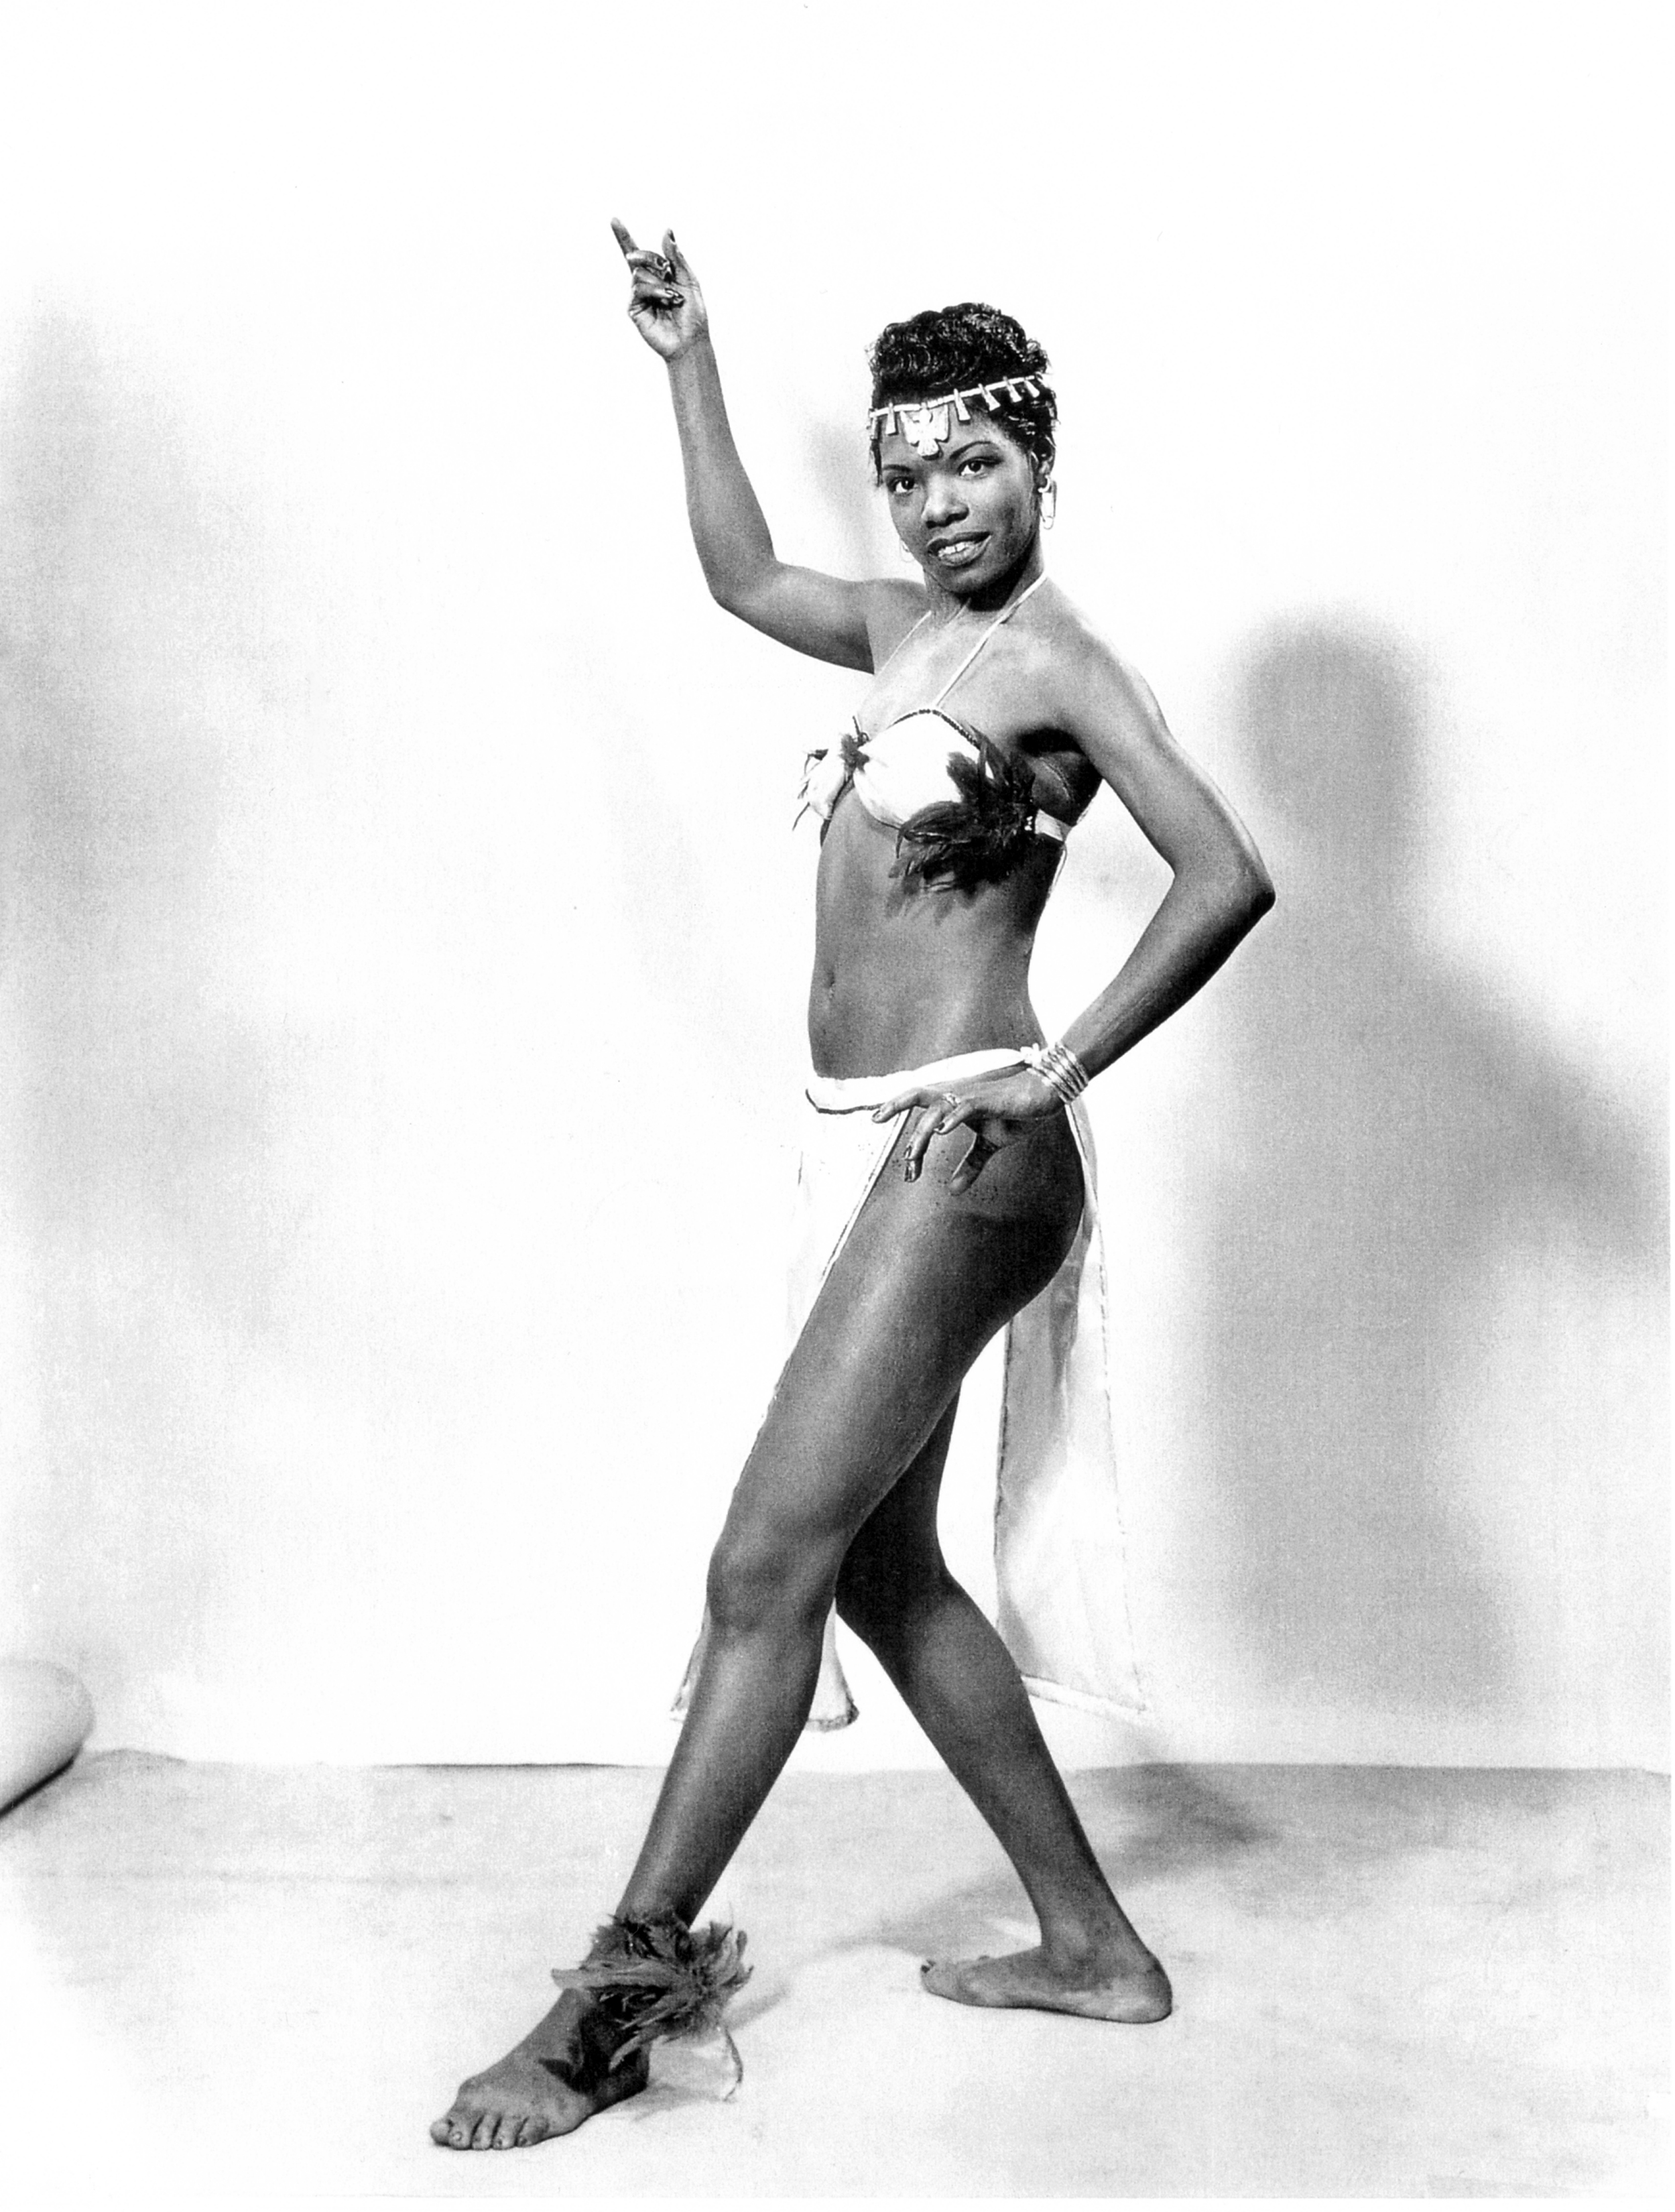 Before Angelou became a published author, she was a dancer. As a young single mother she sang and danced in nightclubs and was noticed by a theater group. Angelou's role in Porgy and Bess allowed her to tour  22 countries in the 1950s.